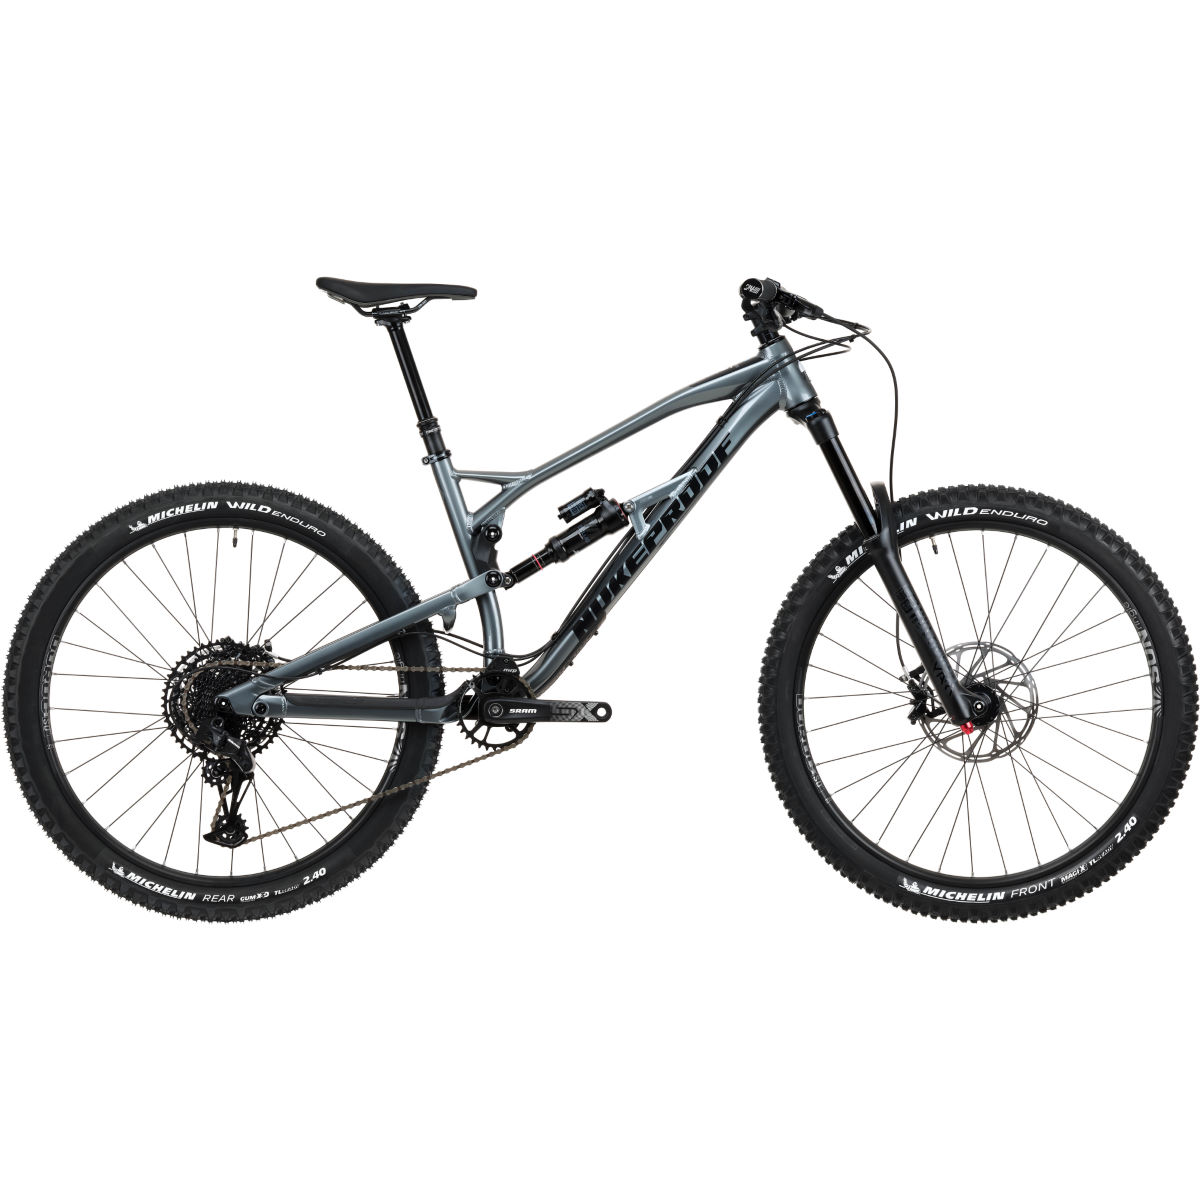 Nukeproof Nukeproof Mega 275 Comp Alloy Bike (SX Eagle - 2020)   Full Suspension Mountain Bikes